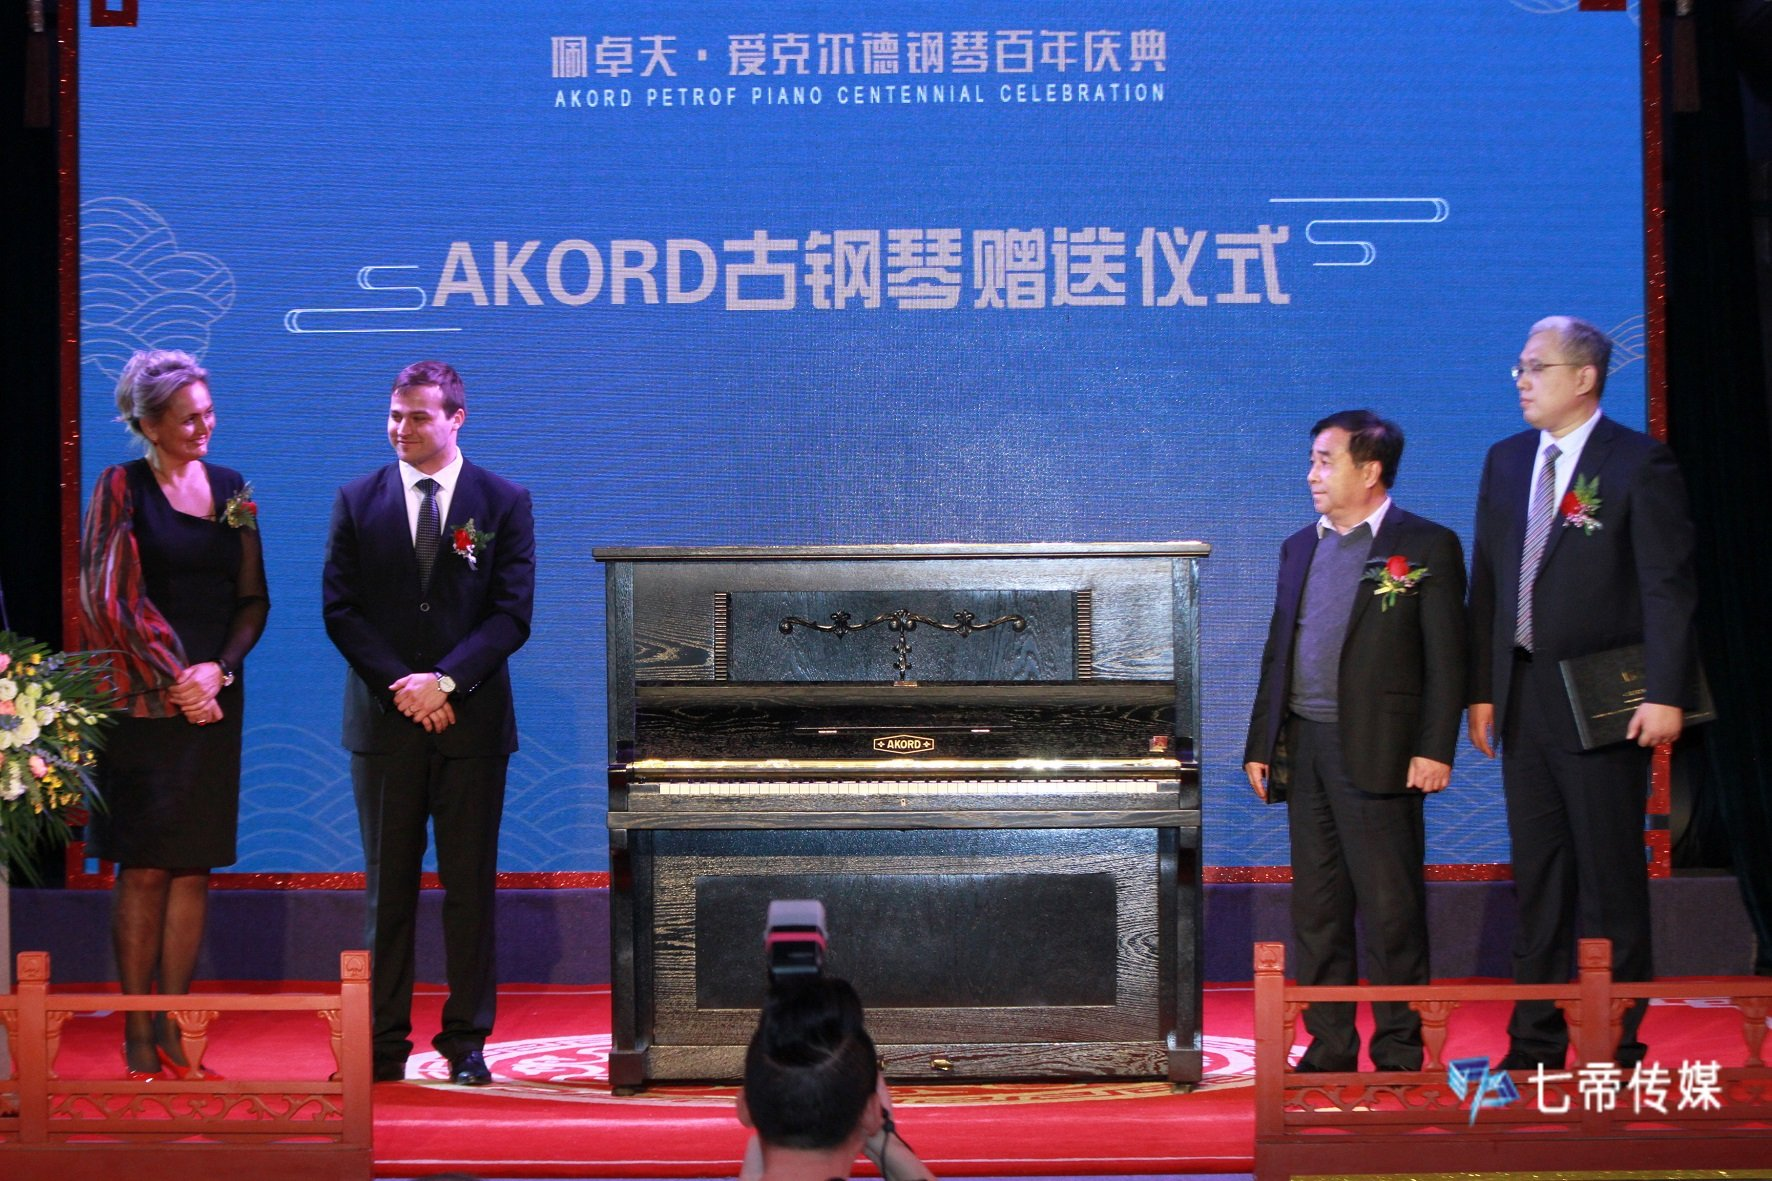 100th anniversary of AKORD brand celebrations